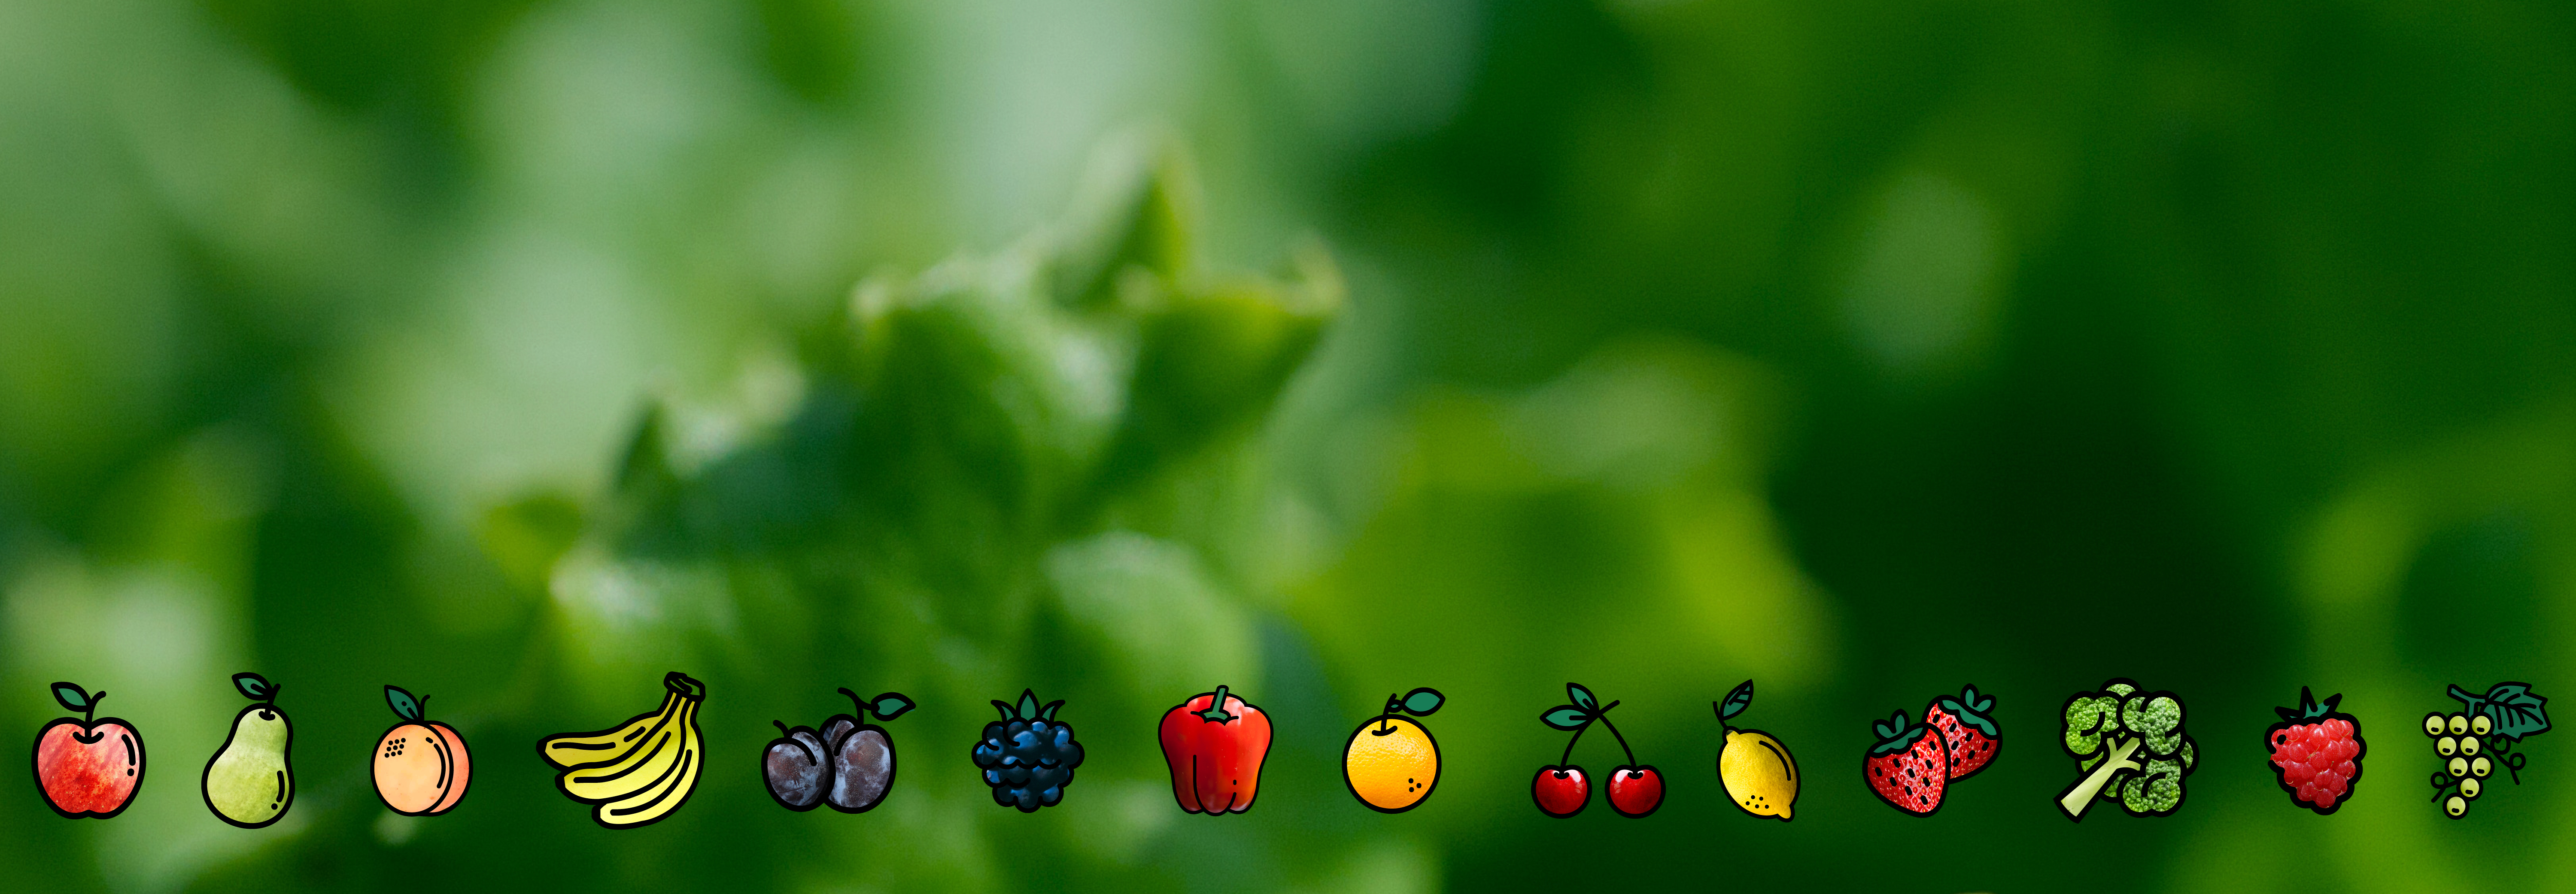 Climacteric-Fruit-Header-no-text